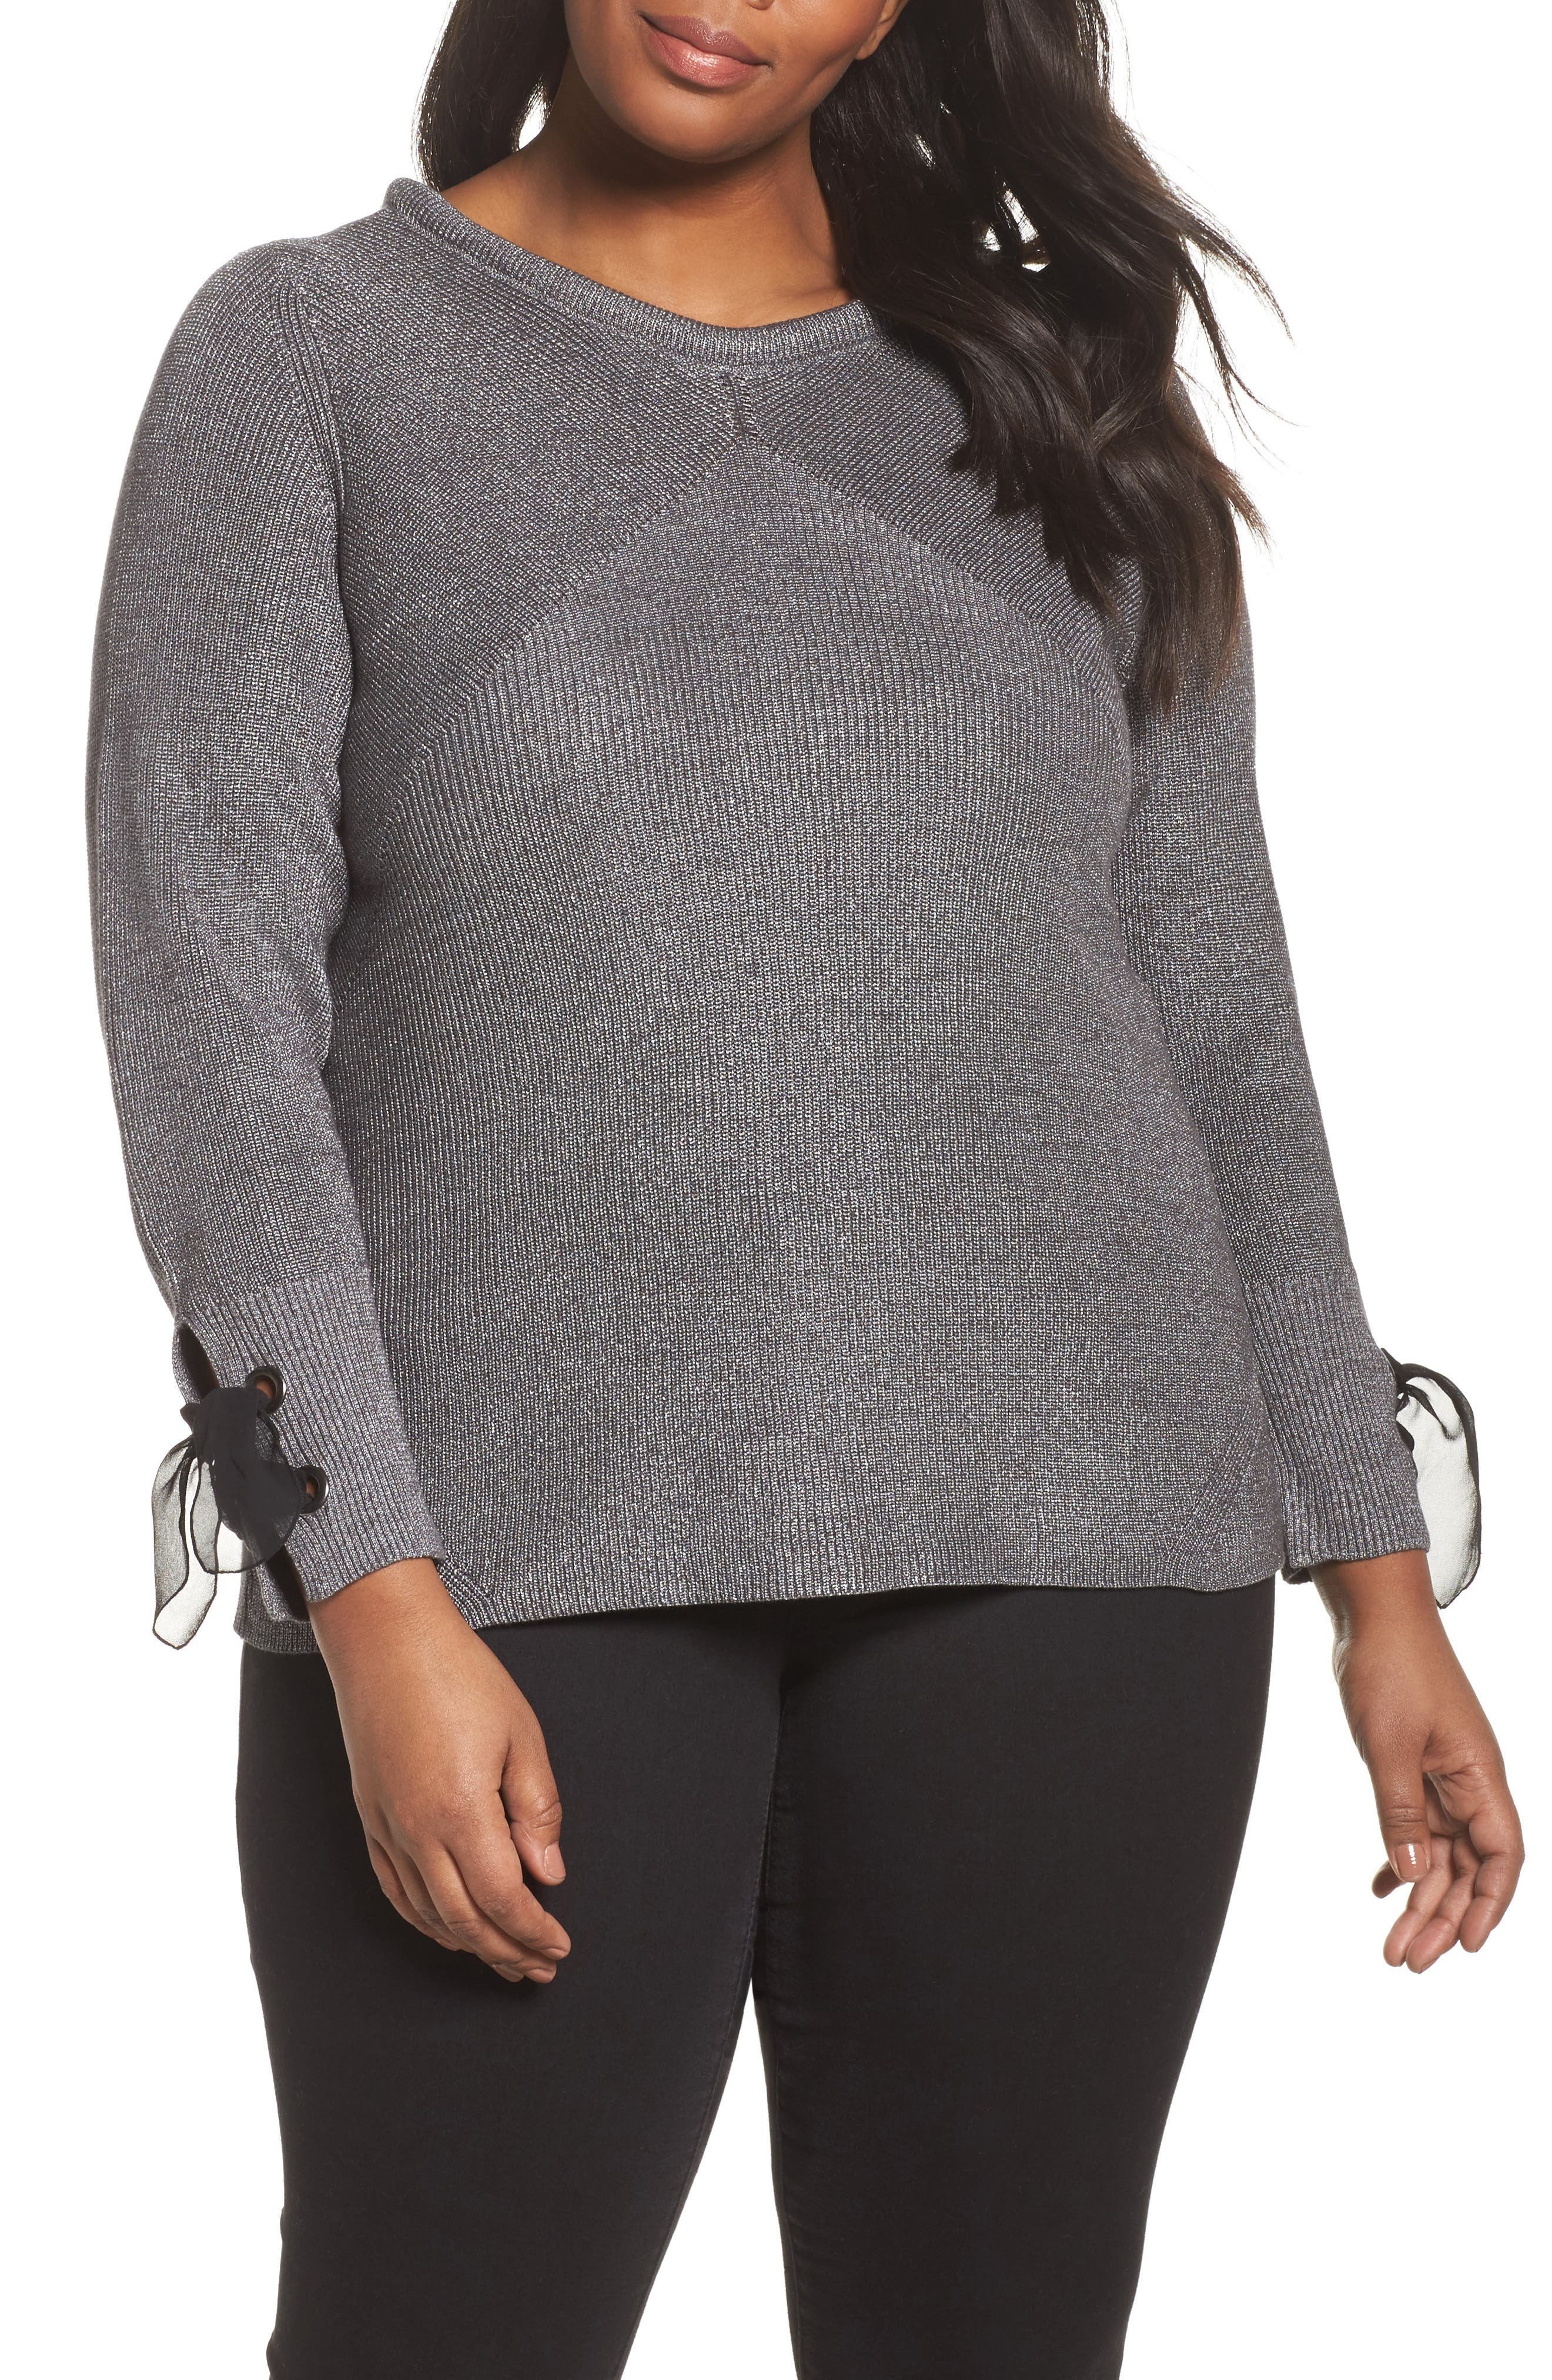 Main Image - NIC+ZOE Metallic Muse Top (Plus Size)